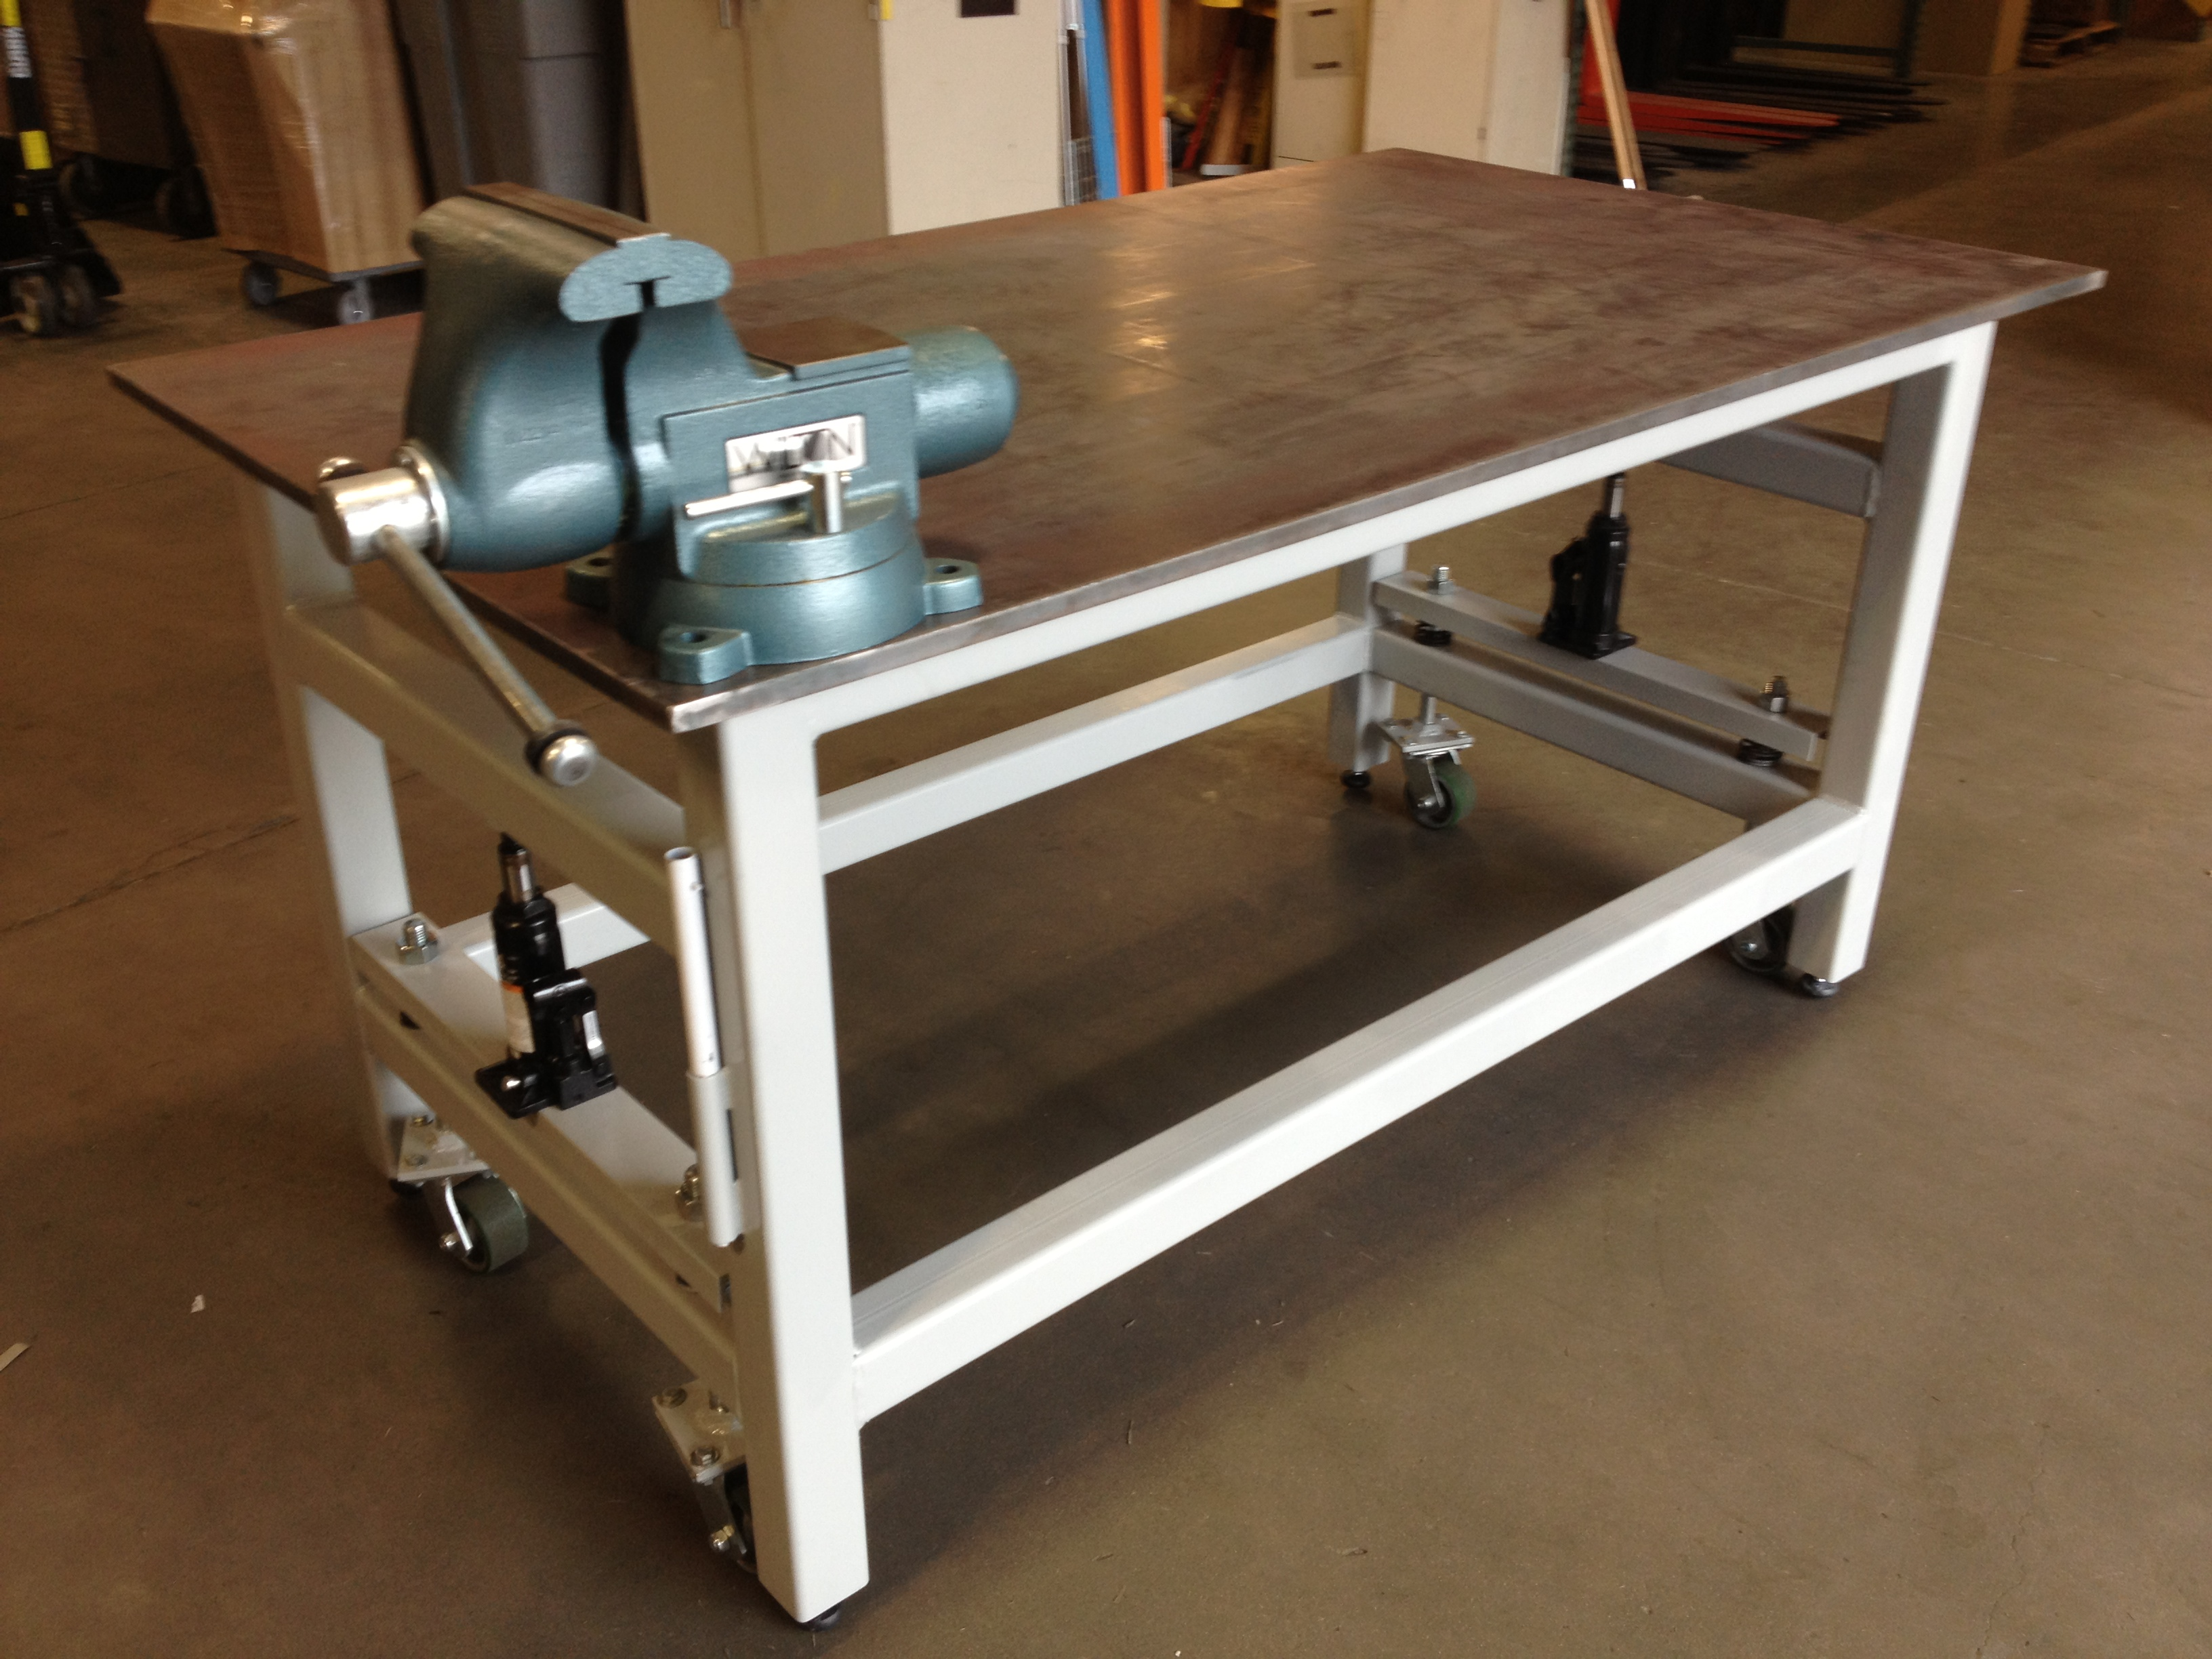 Diy Workbench With Wheels Diy Workbench Retractable Wheels Woodworking Bench Vise Reviews